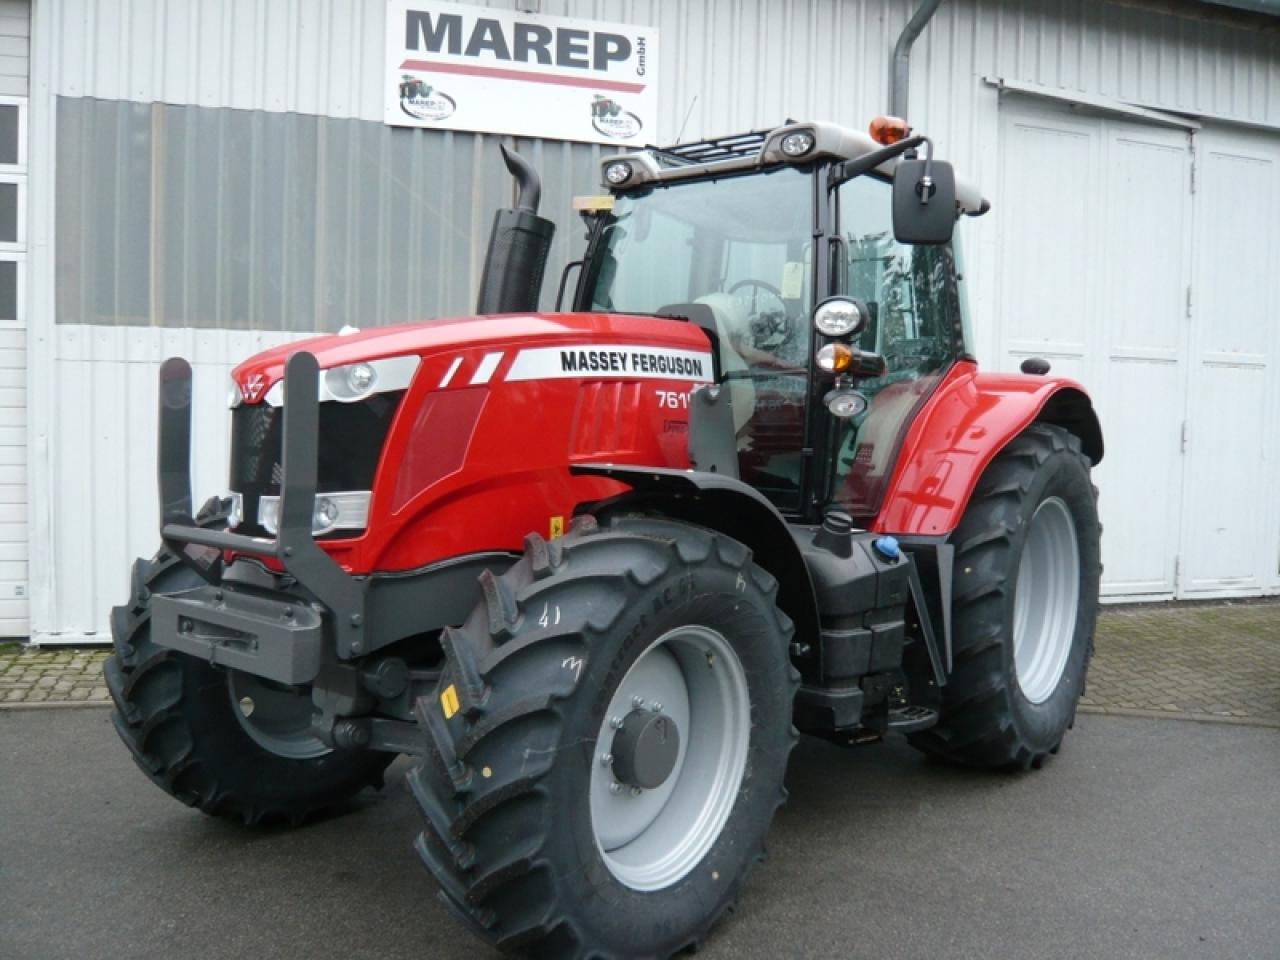 Massey Ferguson MF7615 DYNA-VT EFFICIENT